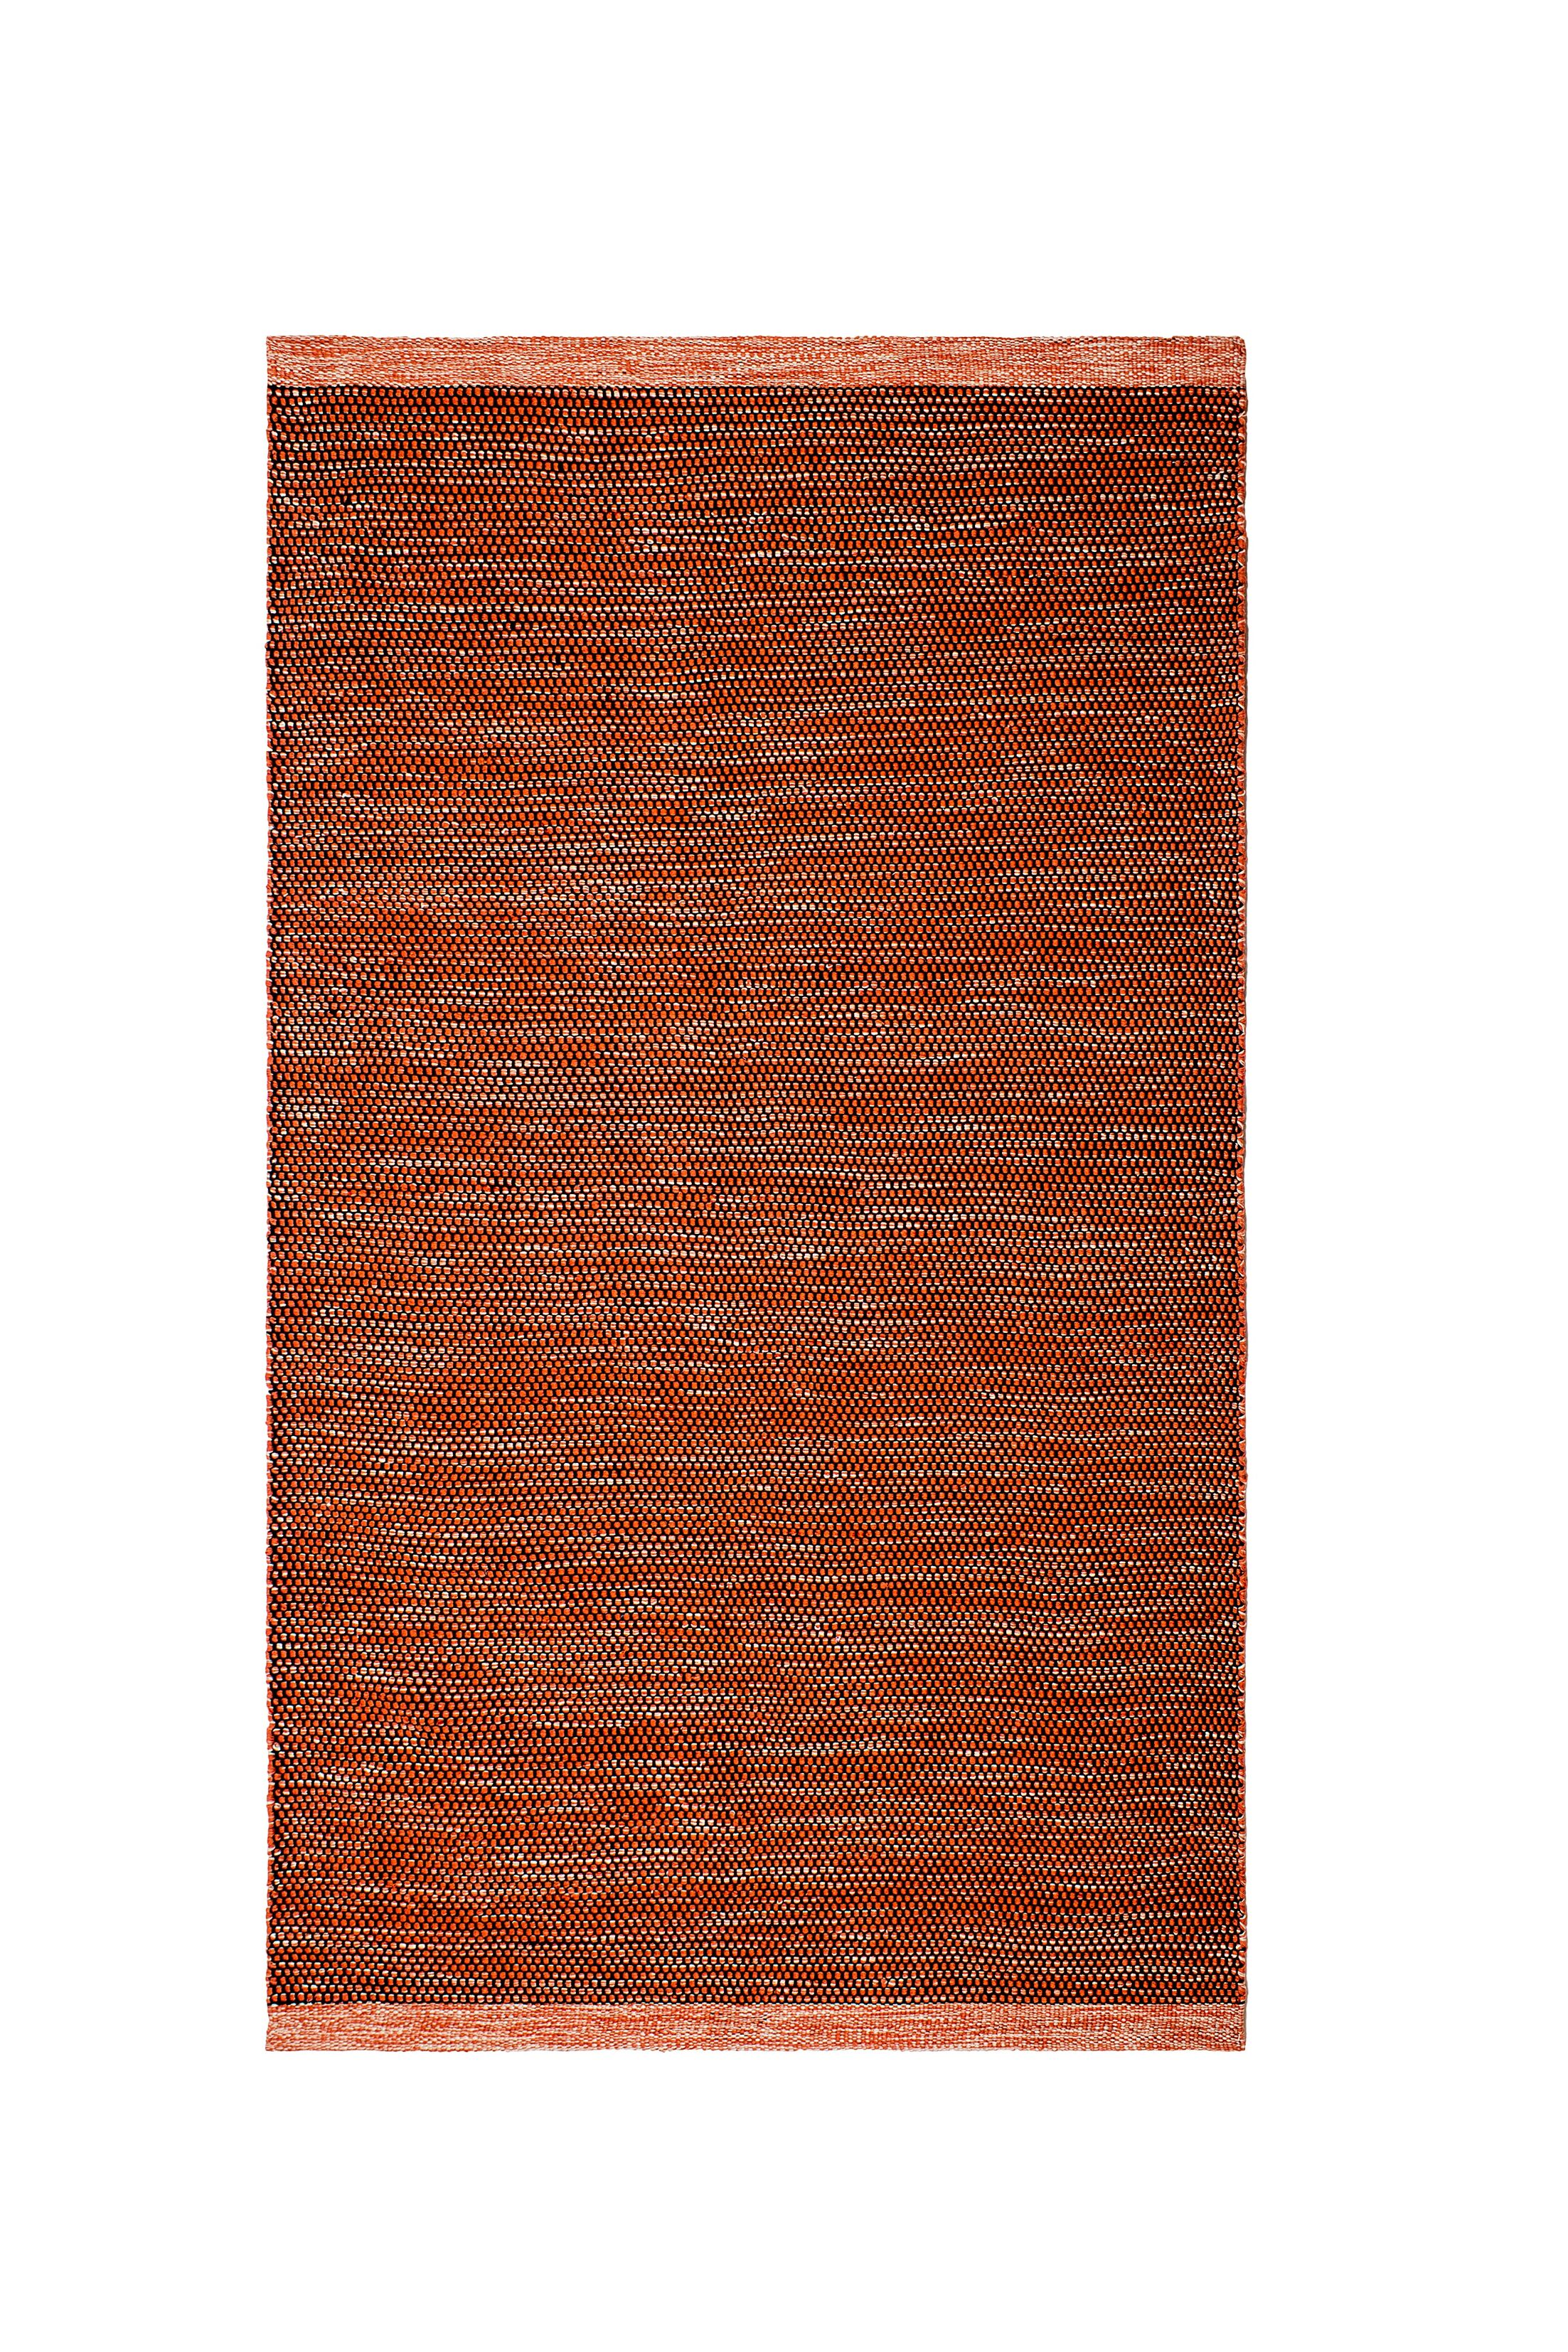 Marciano Hand-Woven Apricot Indoor/Outdoor Area Rug Rug Size: Rectangle 4' x 6'